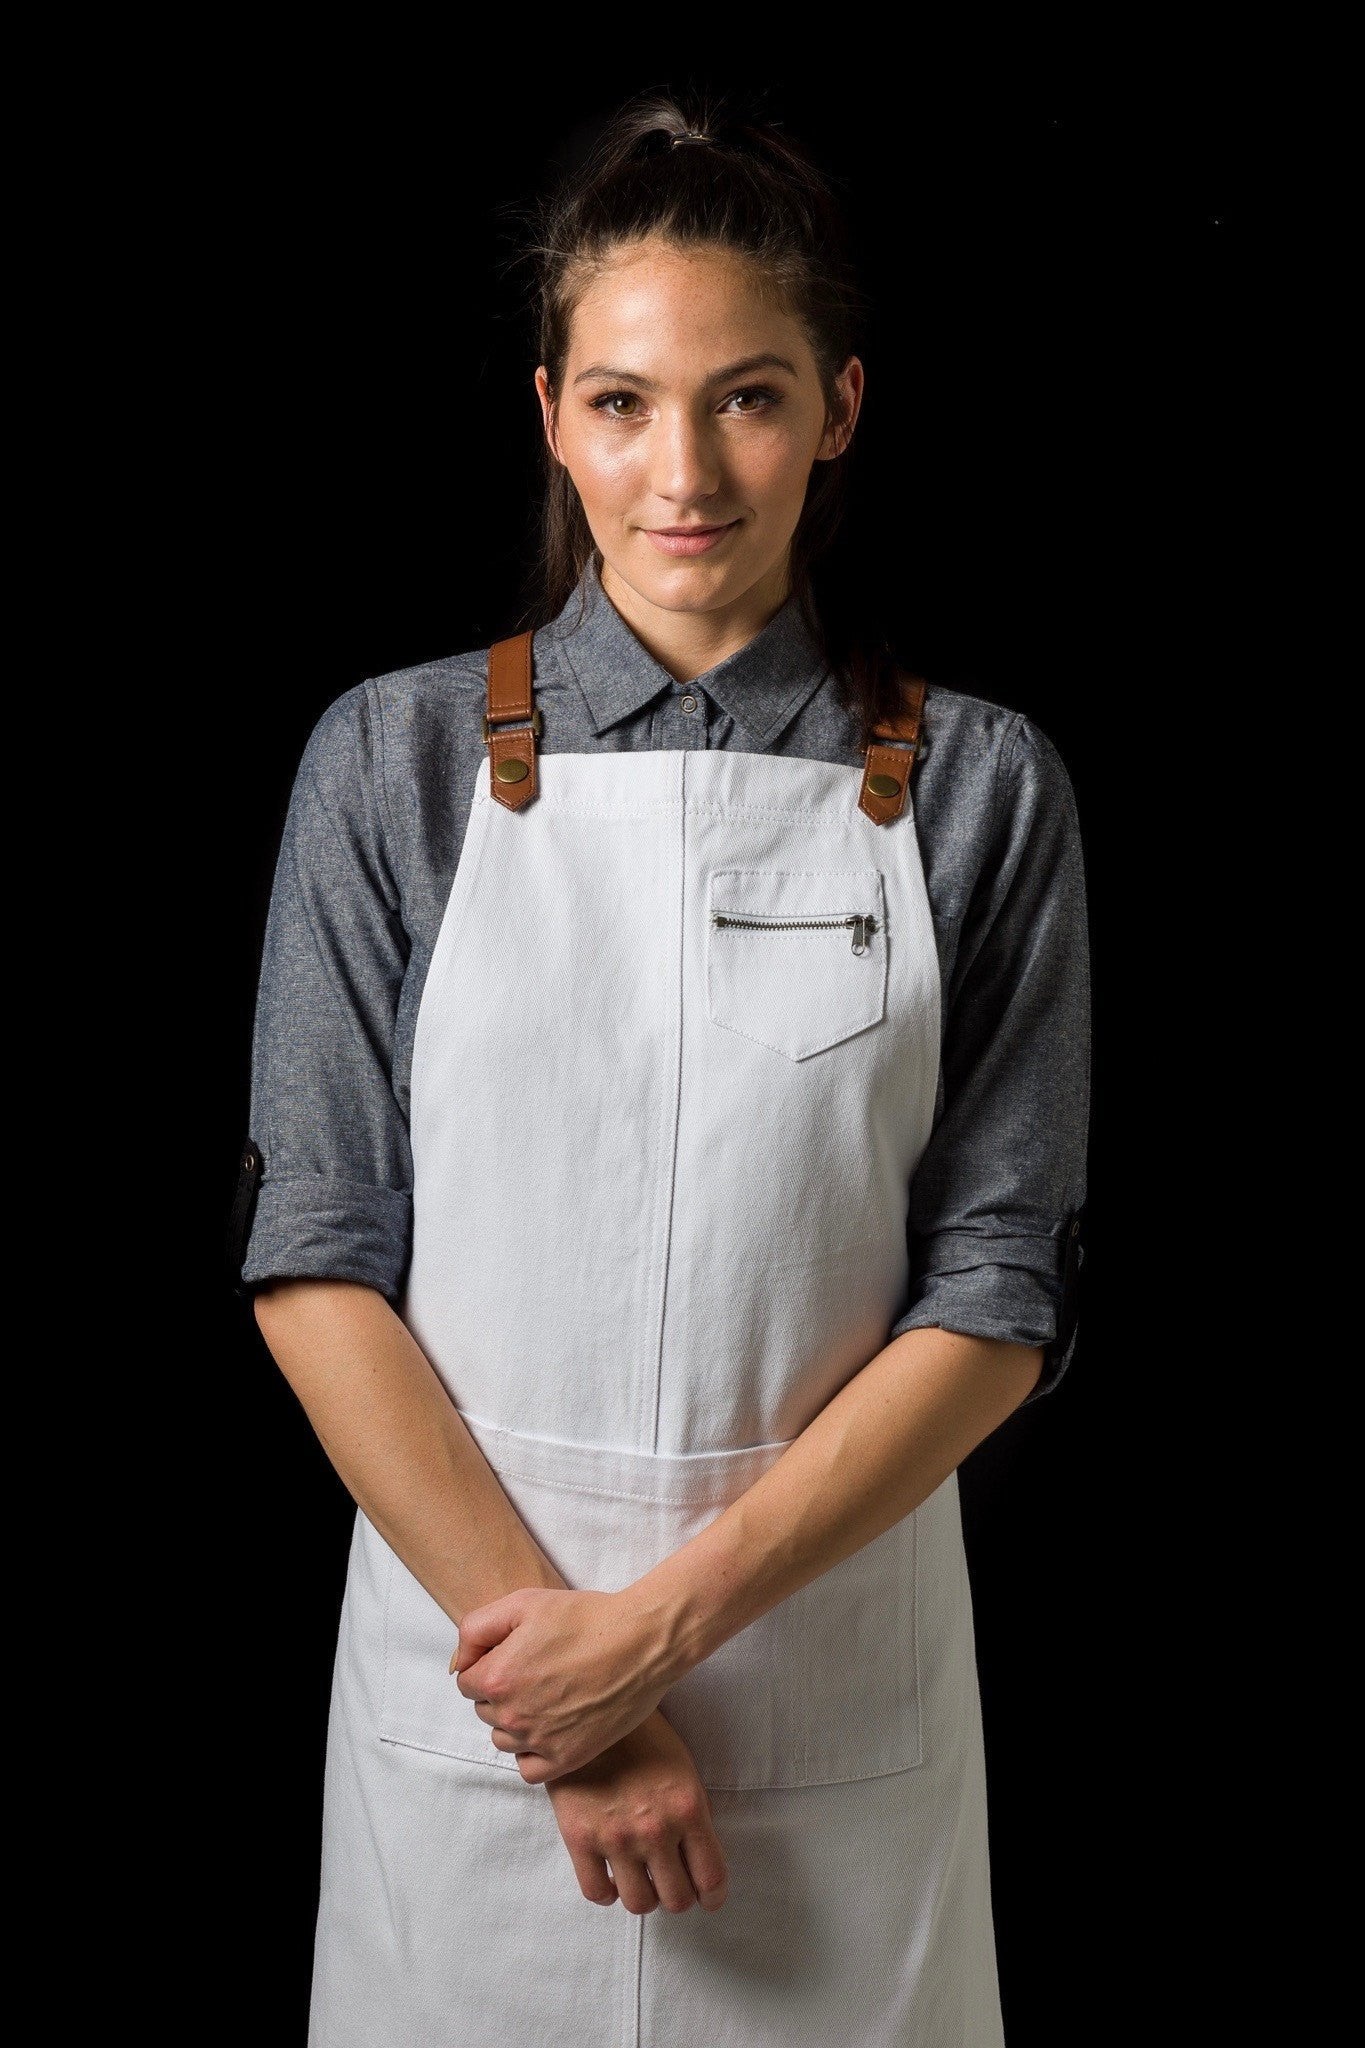 BERMUDA 2 PKT Apron with PU Leather Straps - WHITE/ Tan straps